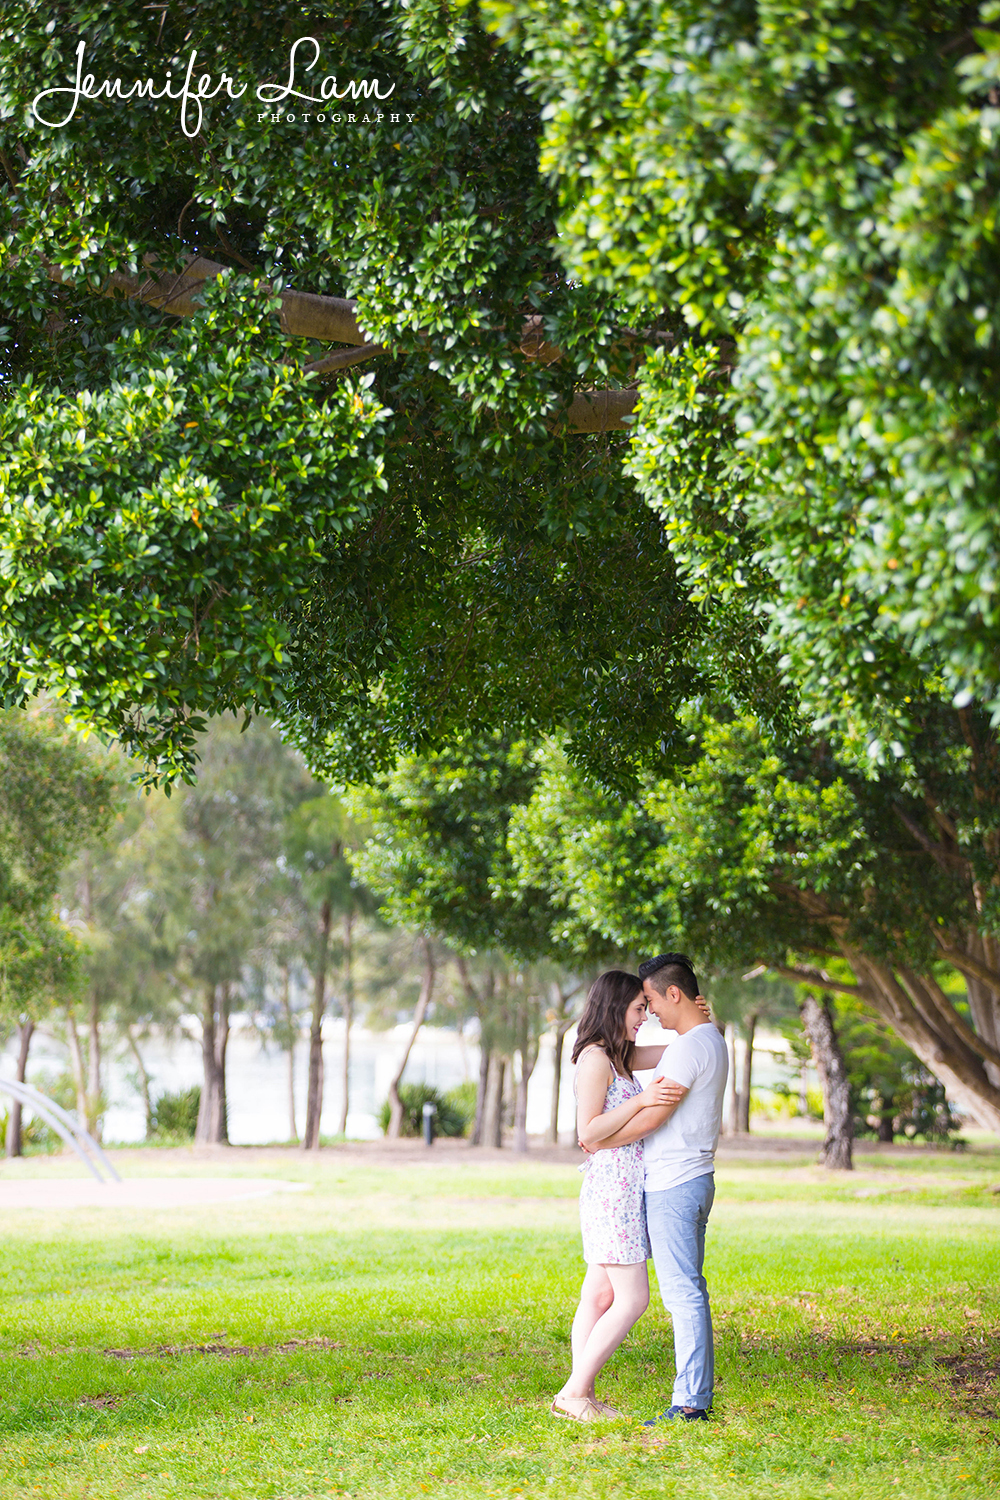 Sydney Pre-Wedding Photography - Jennifer Lam Photography (22).jpg